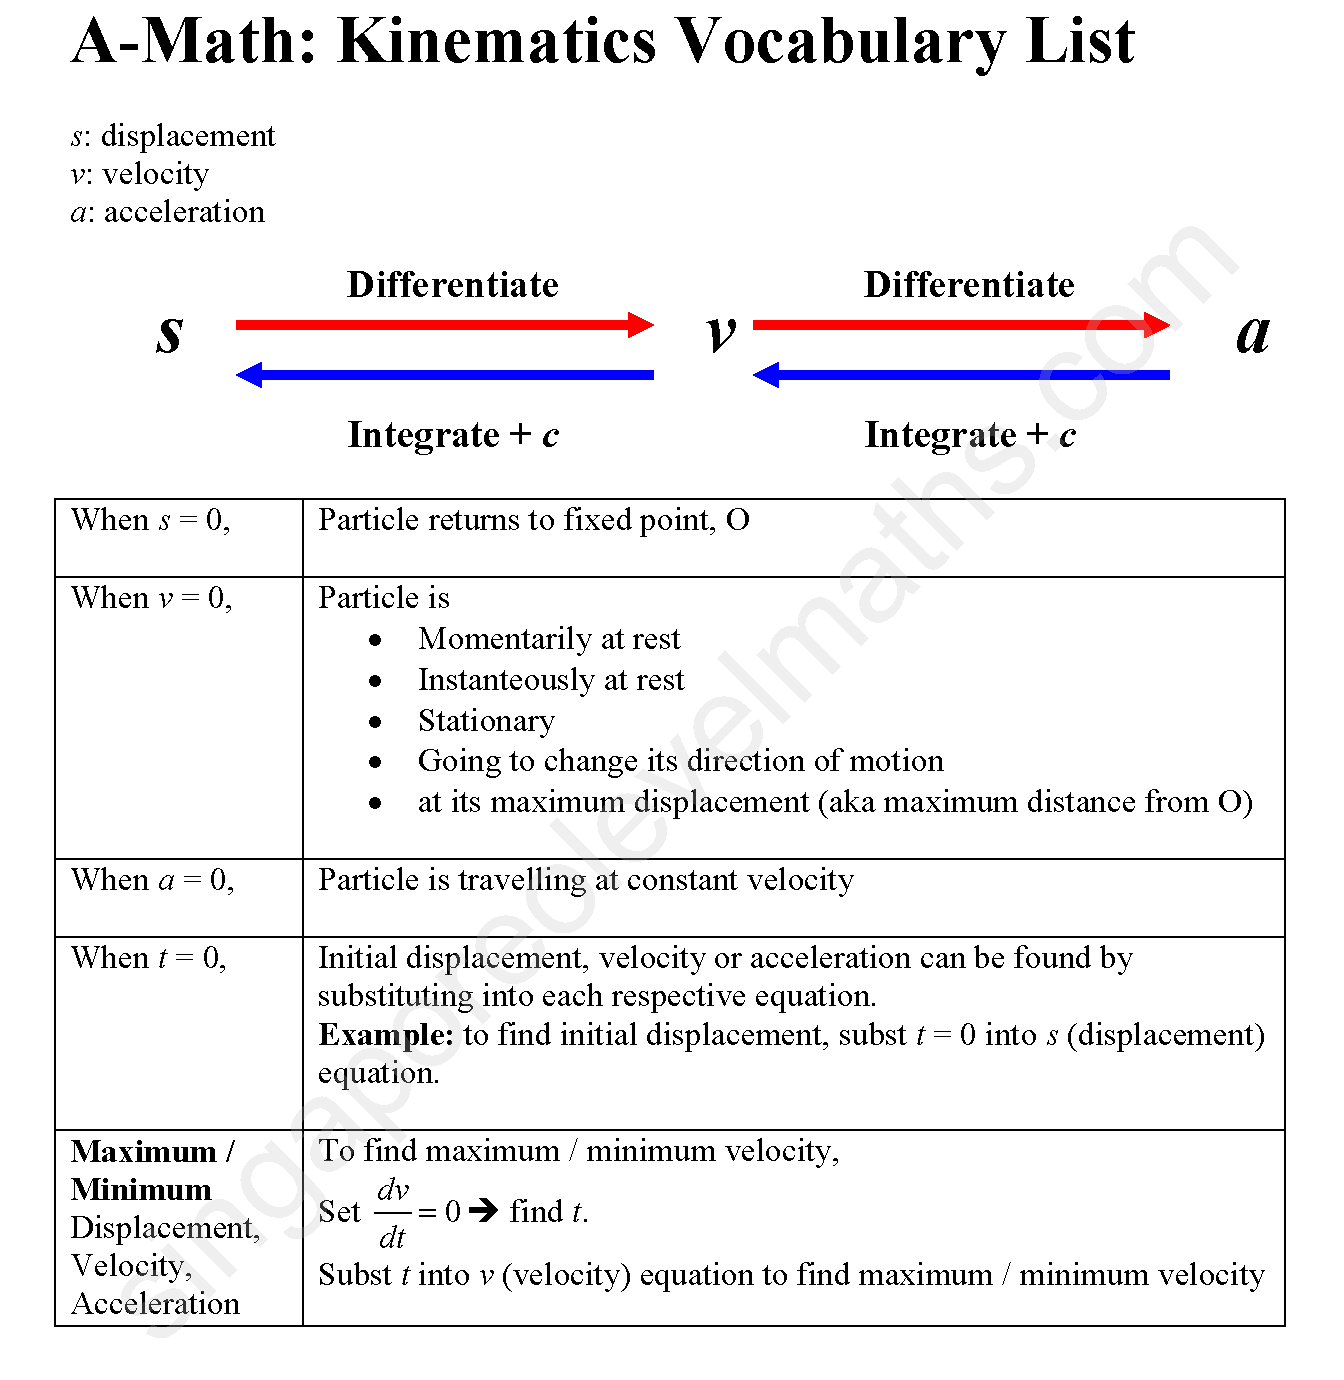 Kinematic Equation To Find Initial Velocity